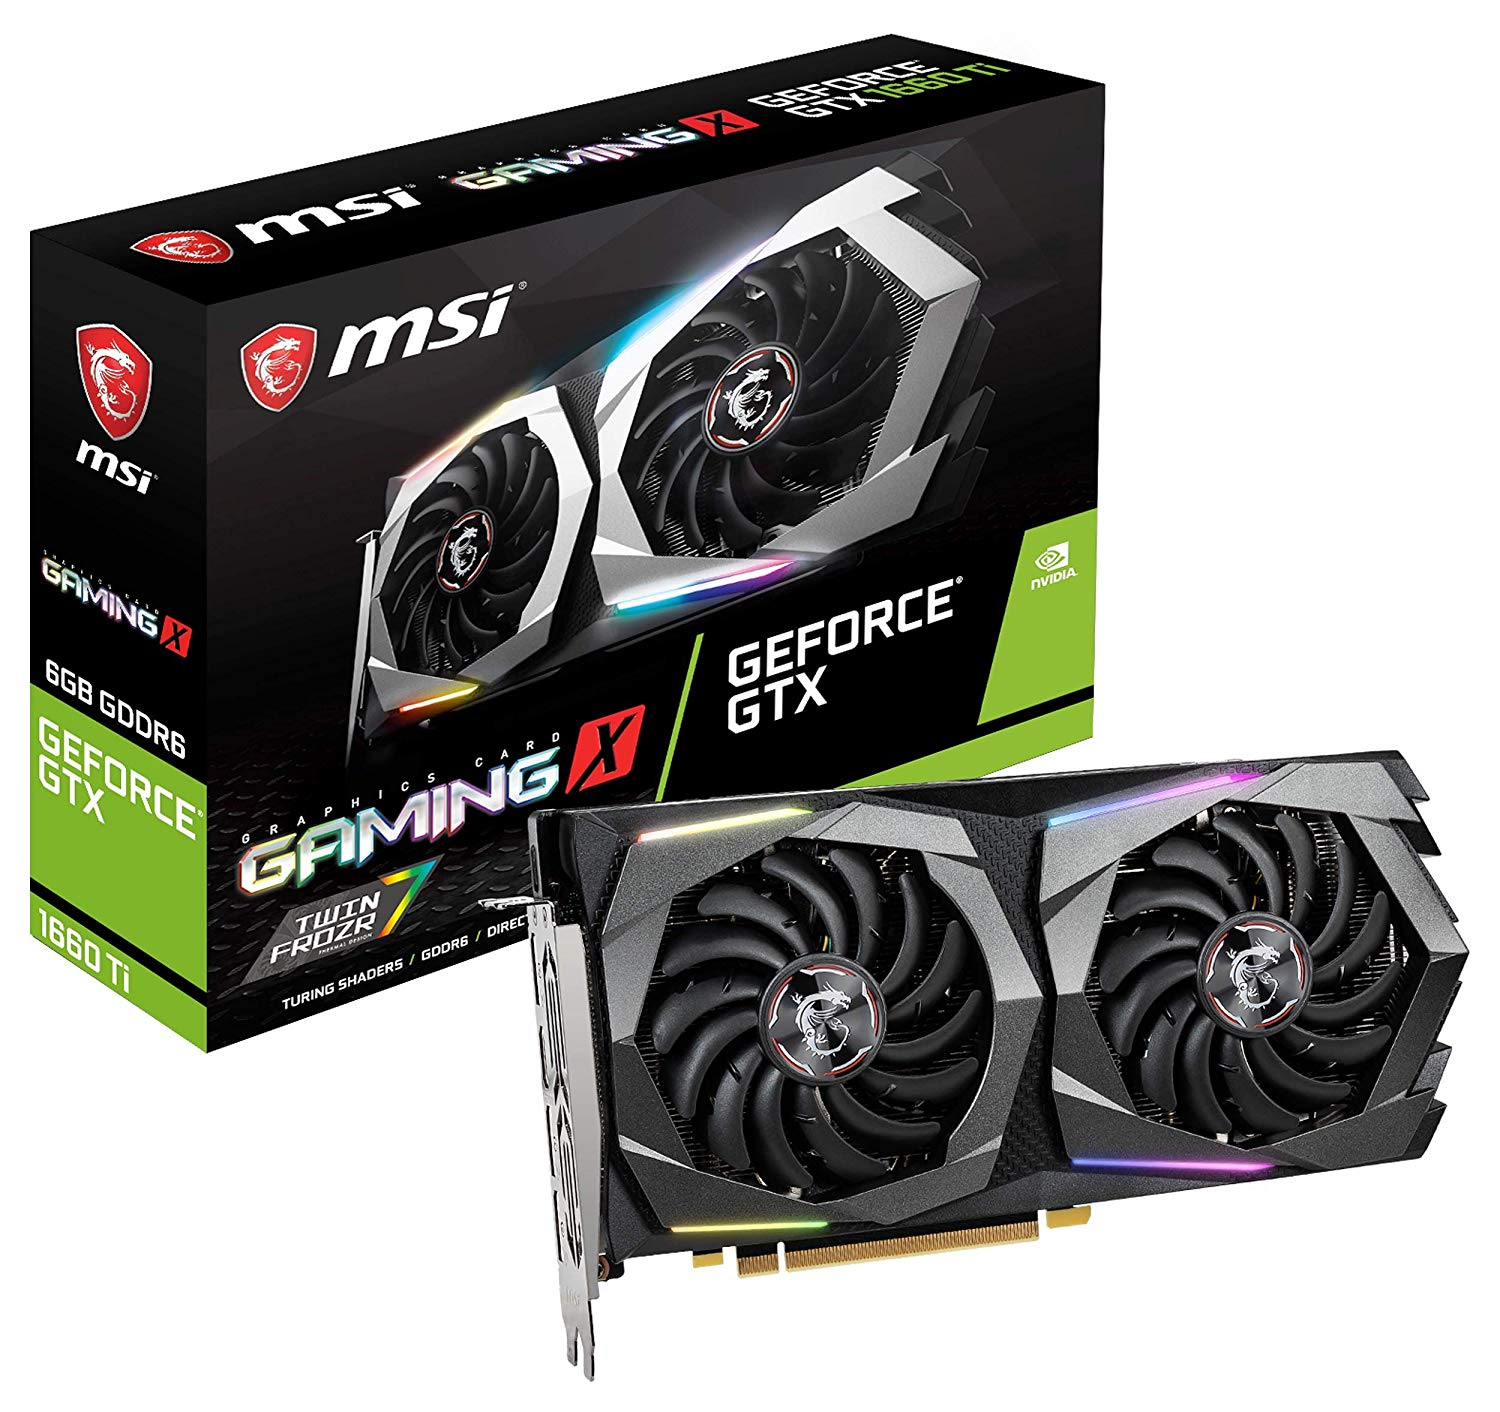 Best Geforce Gtx Radeon Graphics Card Cyber Monday Deals For 2019 Nvidia Msi Deals Listed By Consumer Walk Doctors Of Gaming